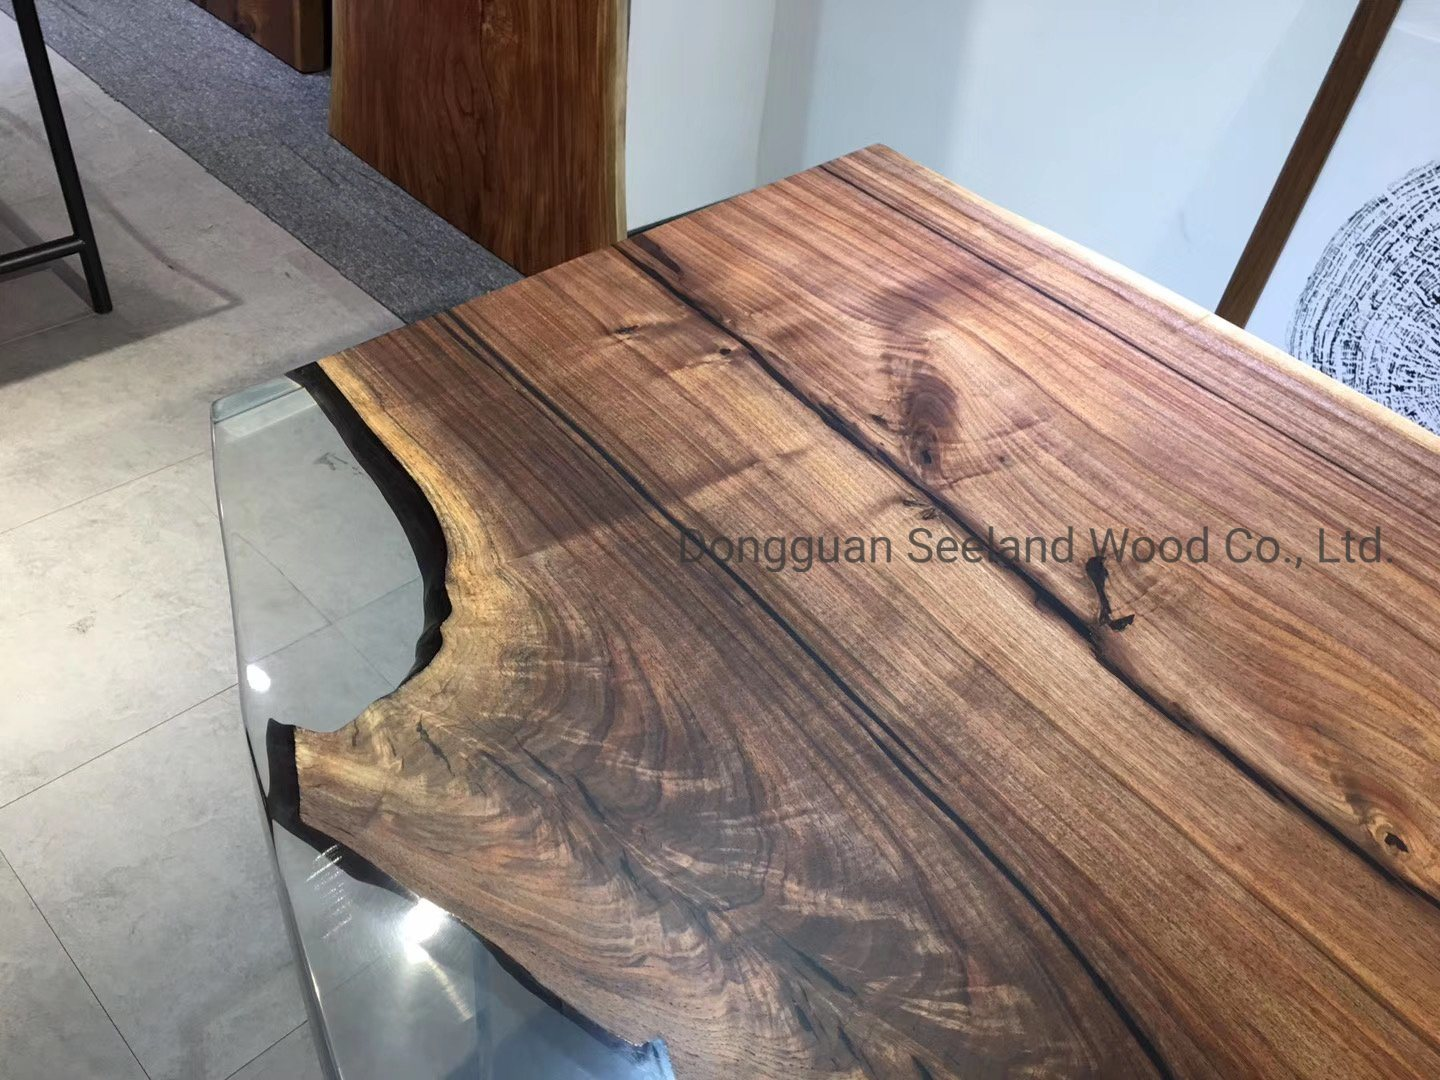 China Solid Wooden Dining Table Set Walnut Butcher Block Top Epoxy Resin Table Natural Wood Table Counter Top Console With Live Edge Photos Pictures Made In China Com